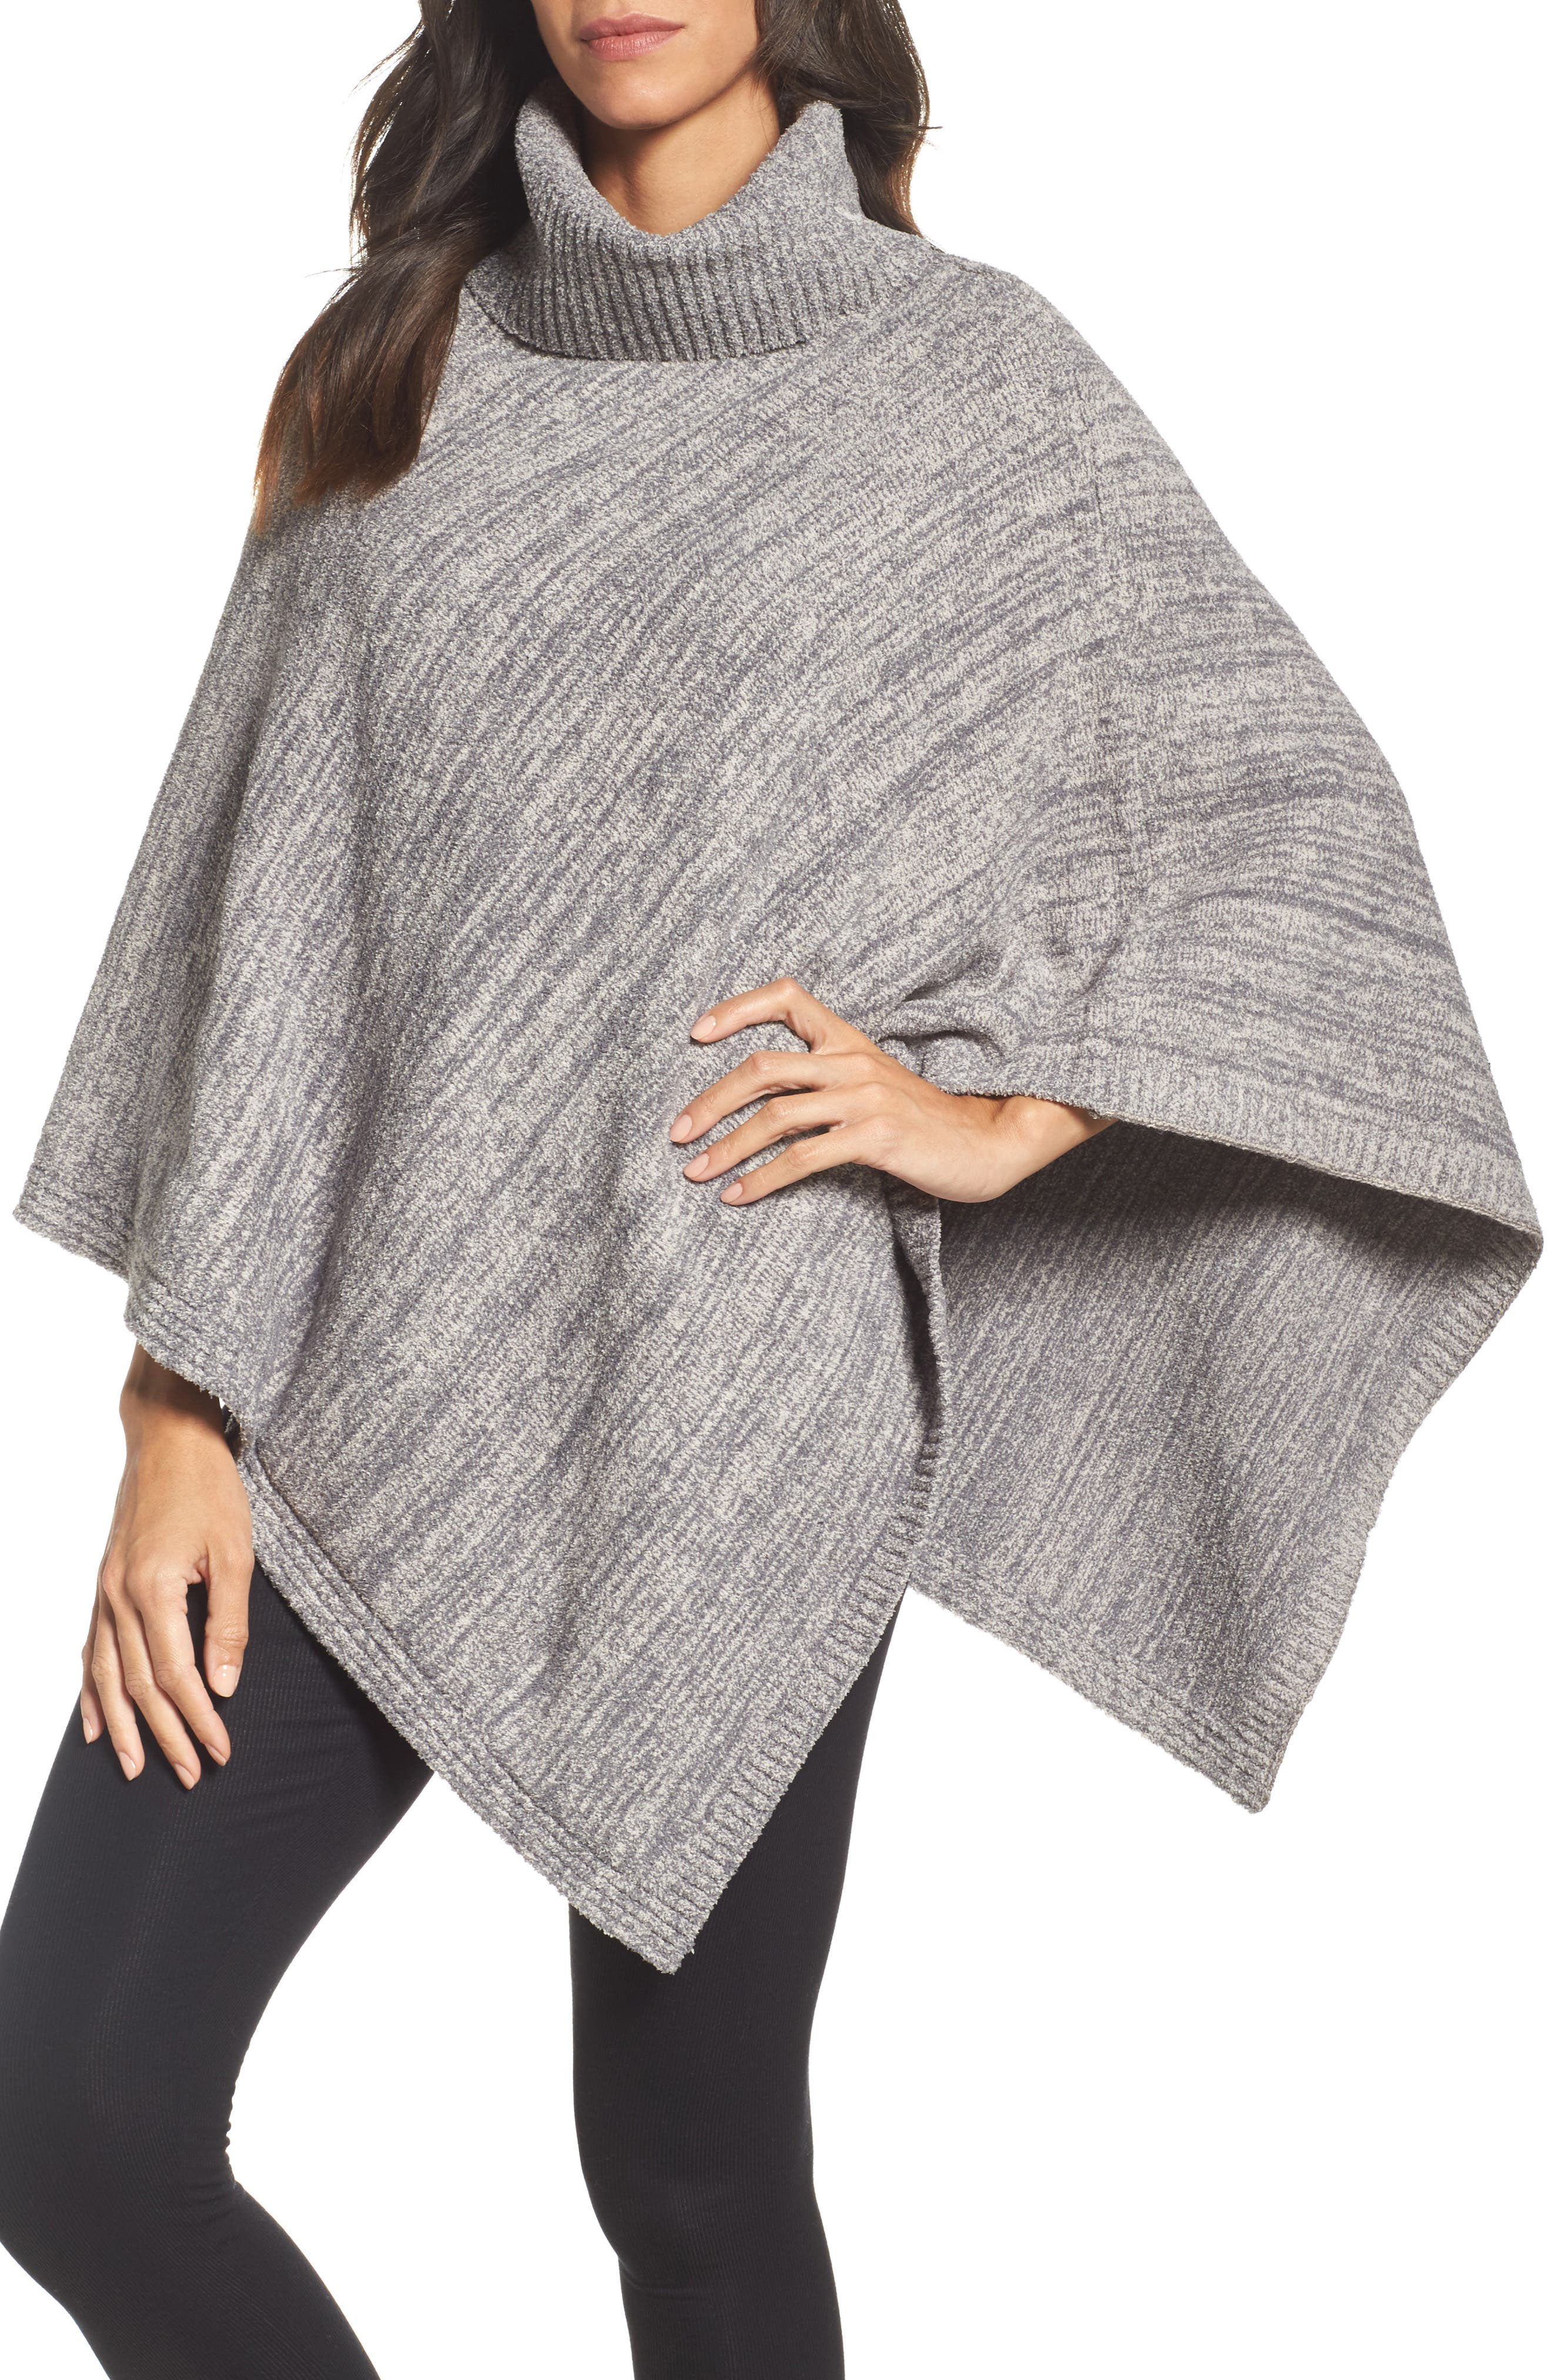 Cozychic<sup>®</sup> Point Dume Poncho,                             Main thumbnail 1, color,                             Graphite/ Stone Heathered